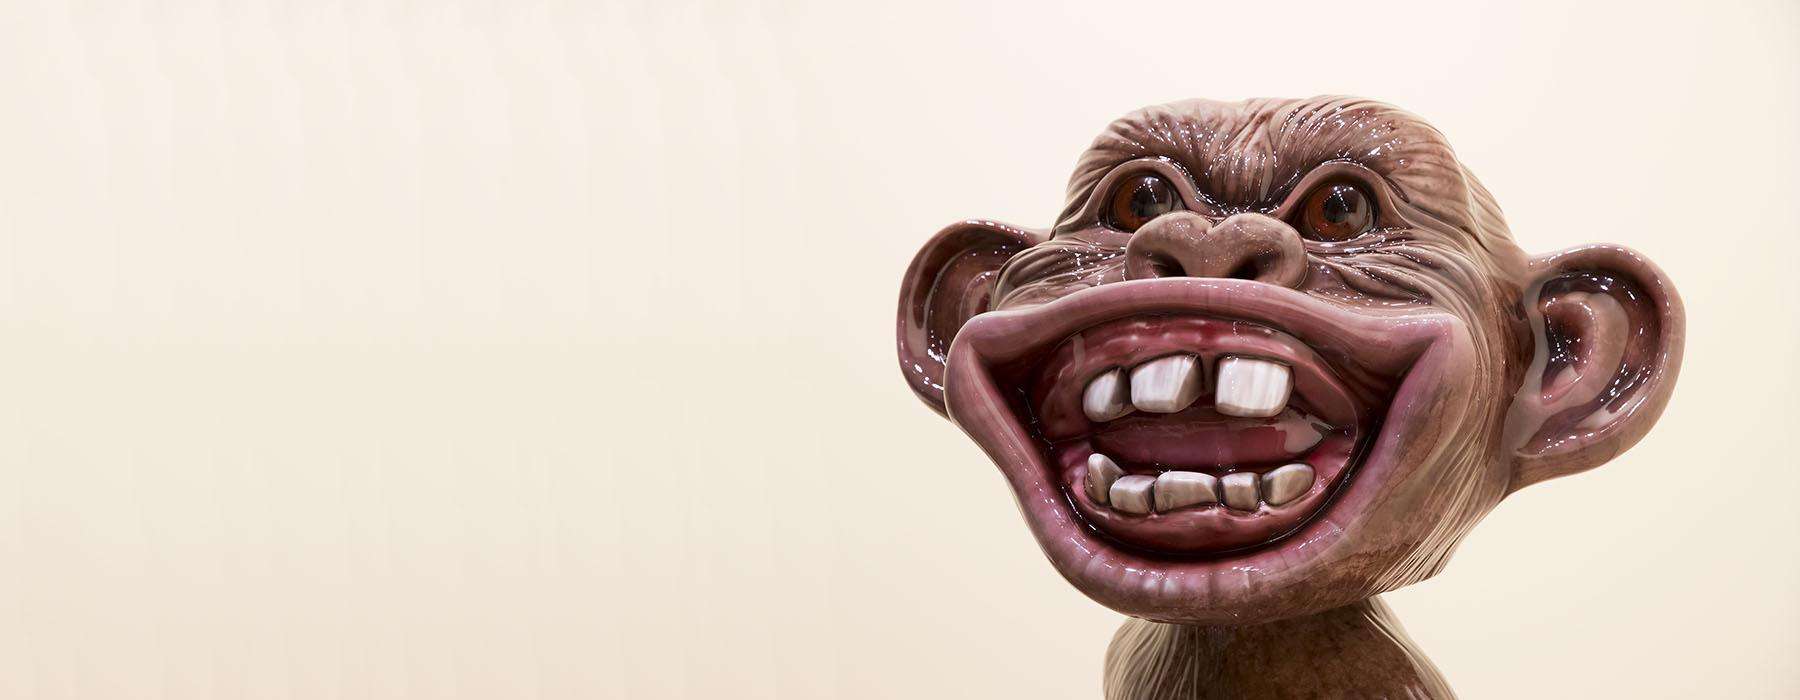 Shiny smiling monkey face